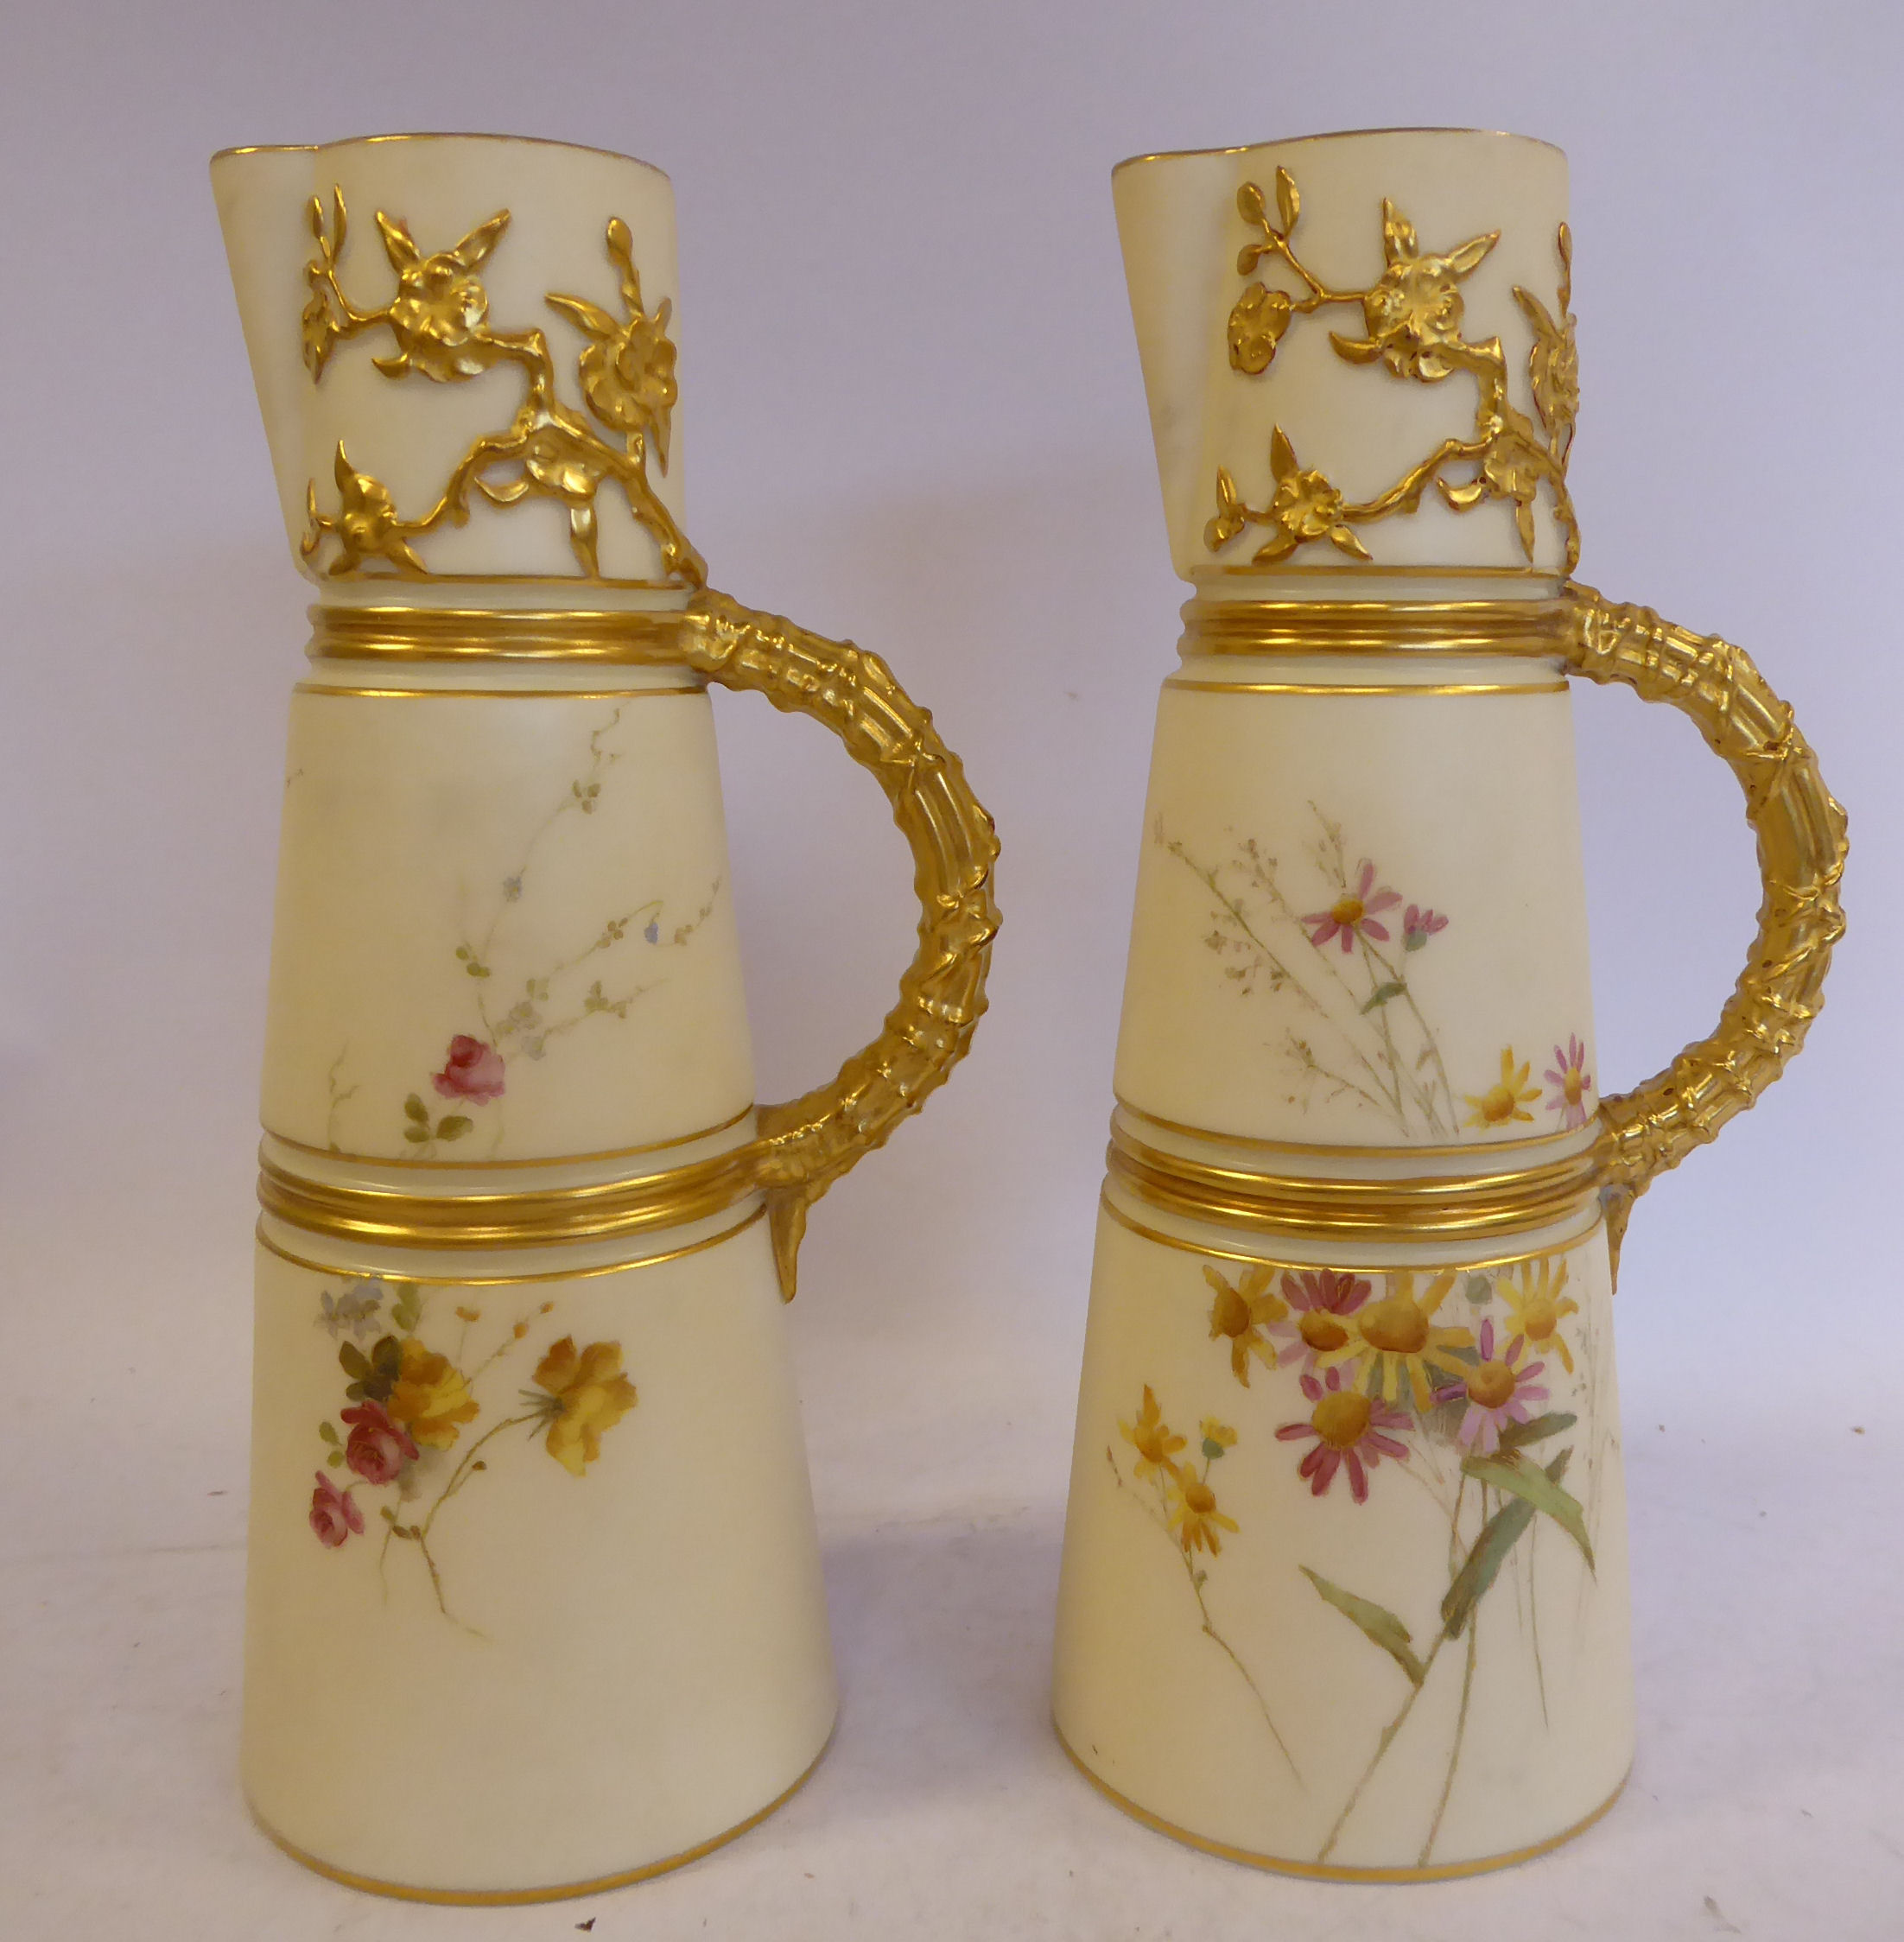 Lot 3 - A pair of Royal Worcester blush ivory glazed china jugs of banded,